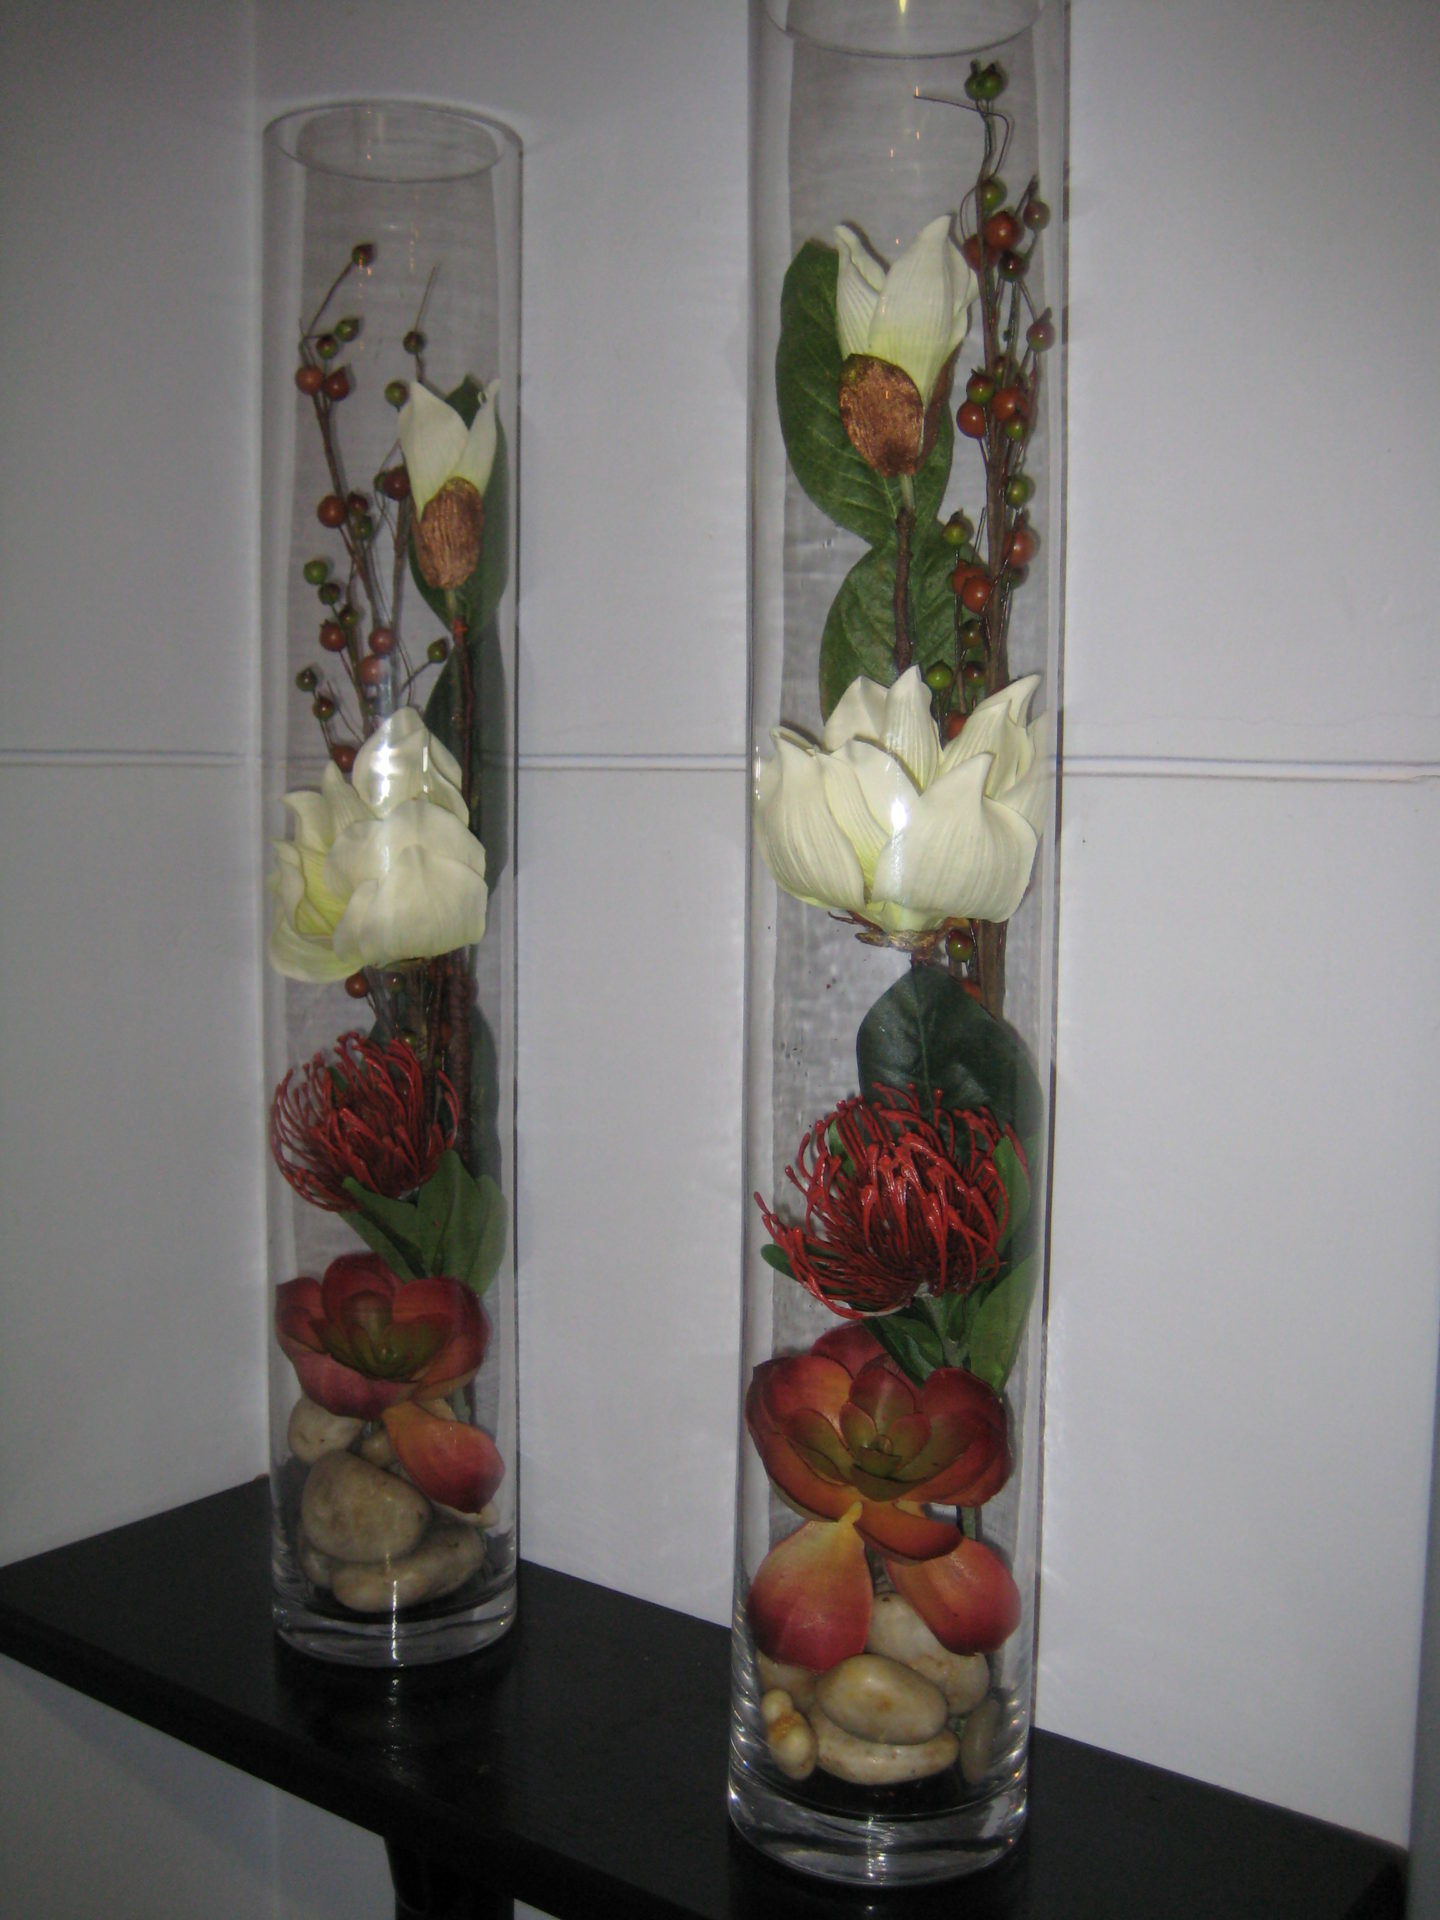 Matching set glass vase Magnolia arrangements